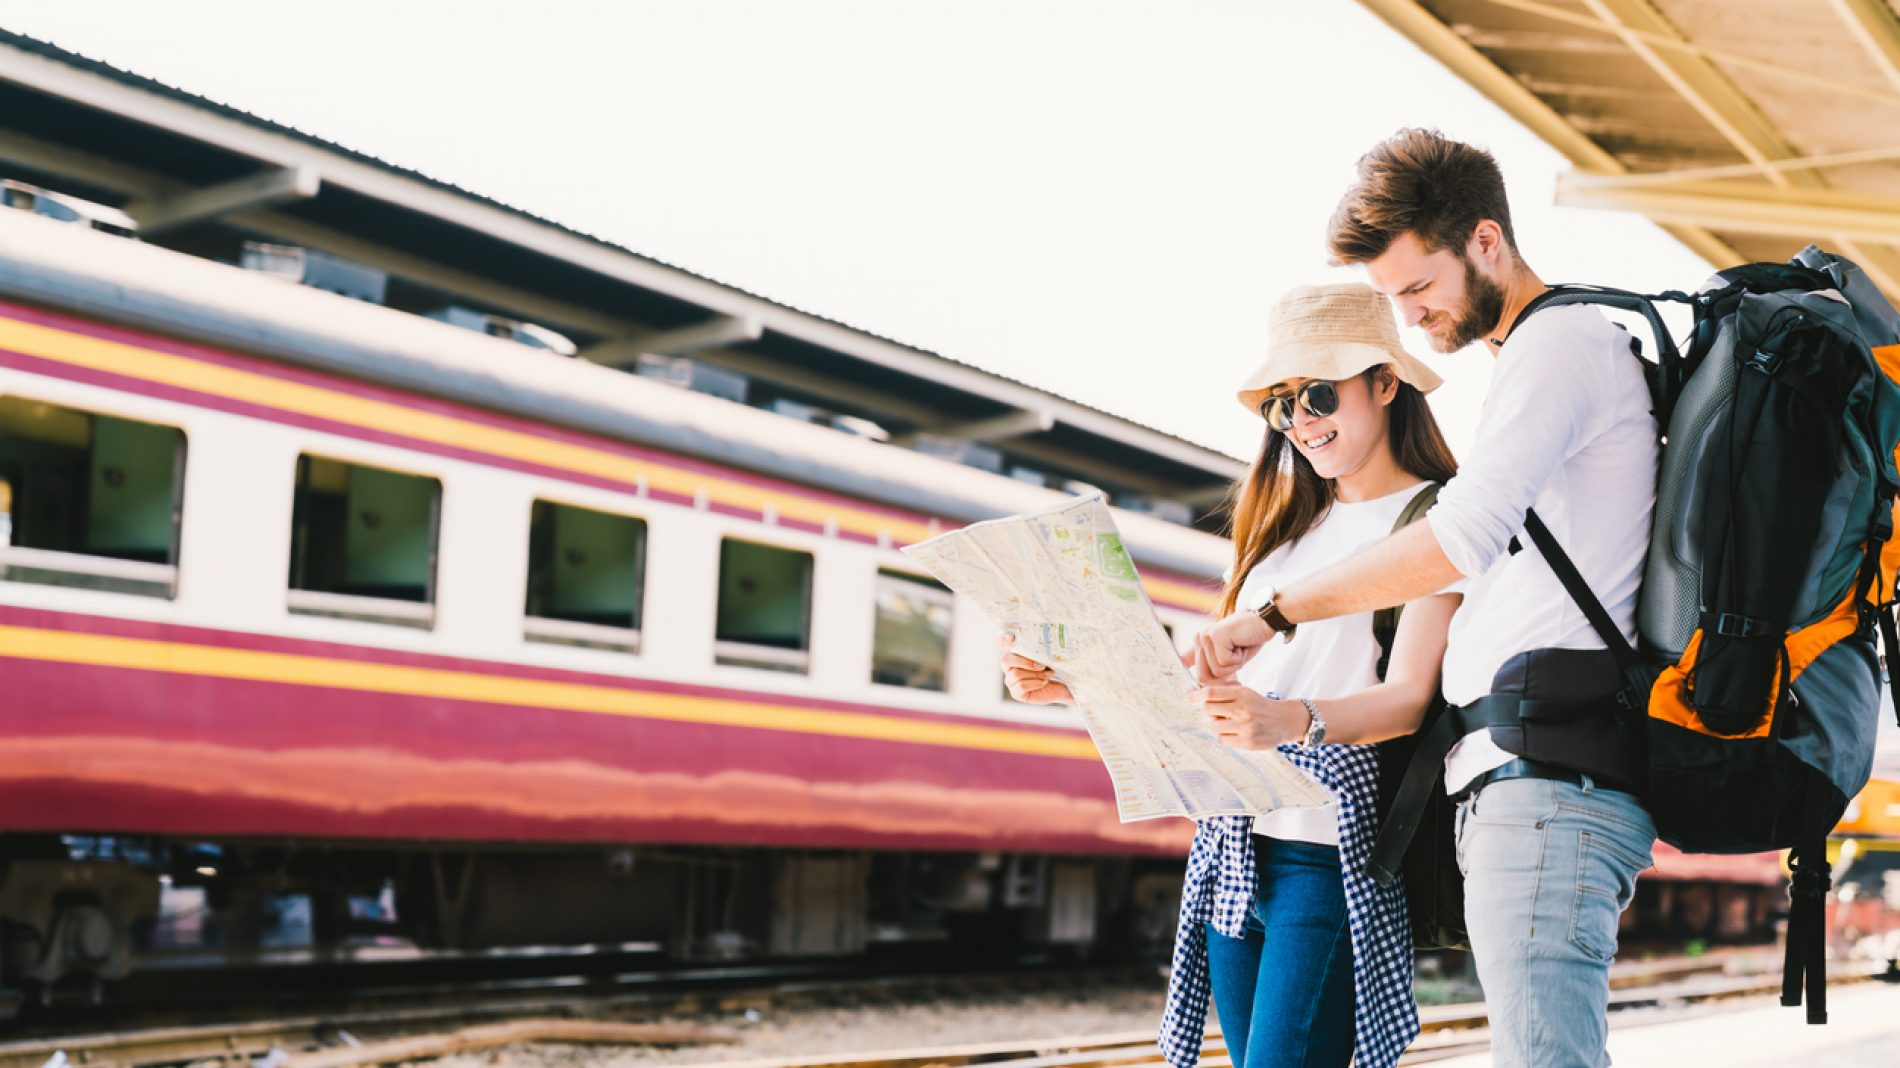 Two people in a train station looking at a map